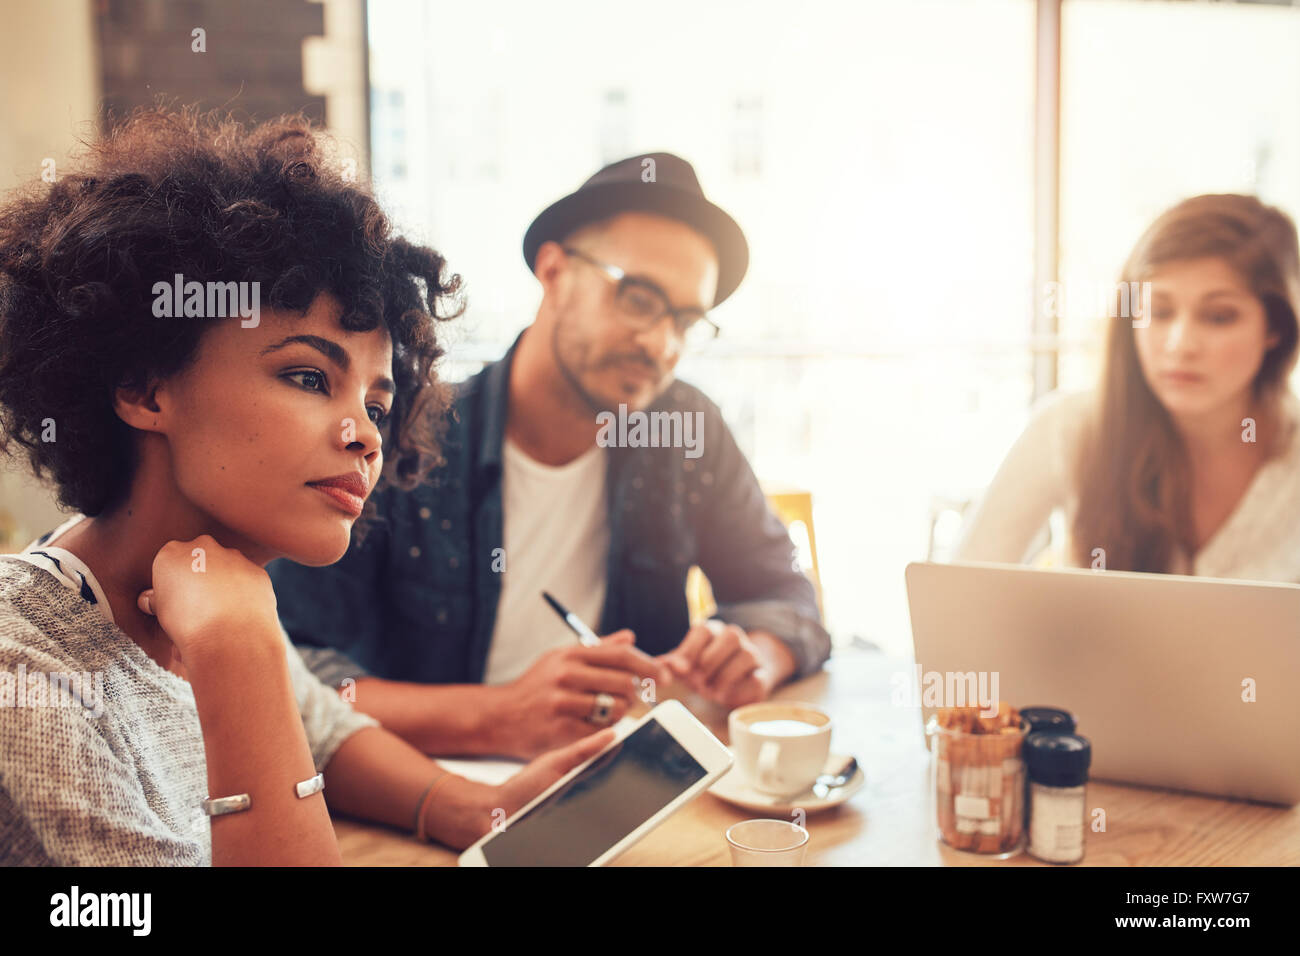 Close up portrait of young african woman with digital tablet and people in background at a cafe table. Young people - Stock Image